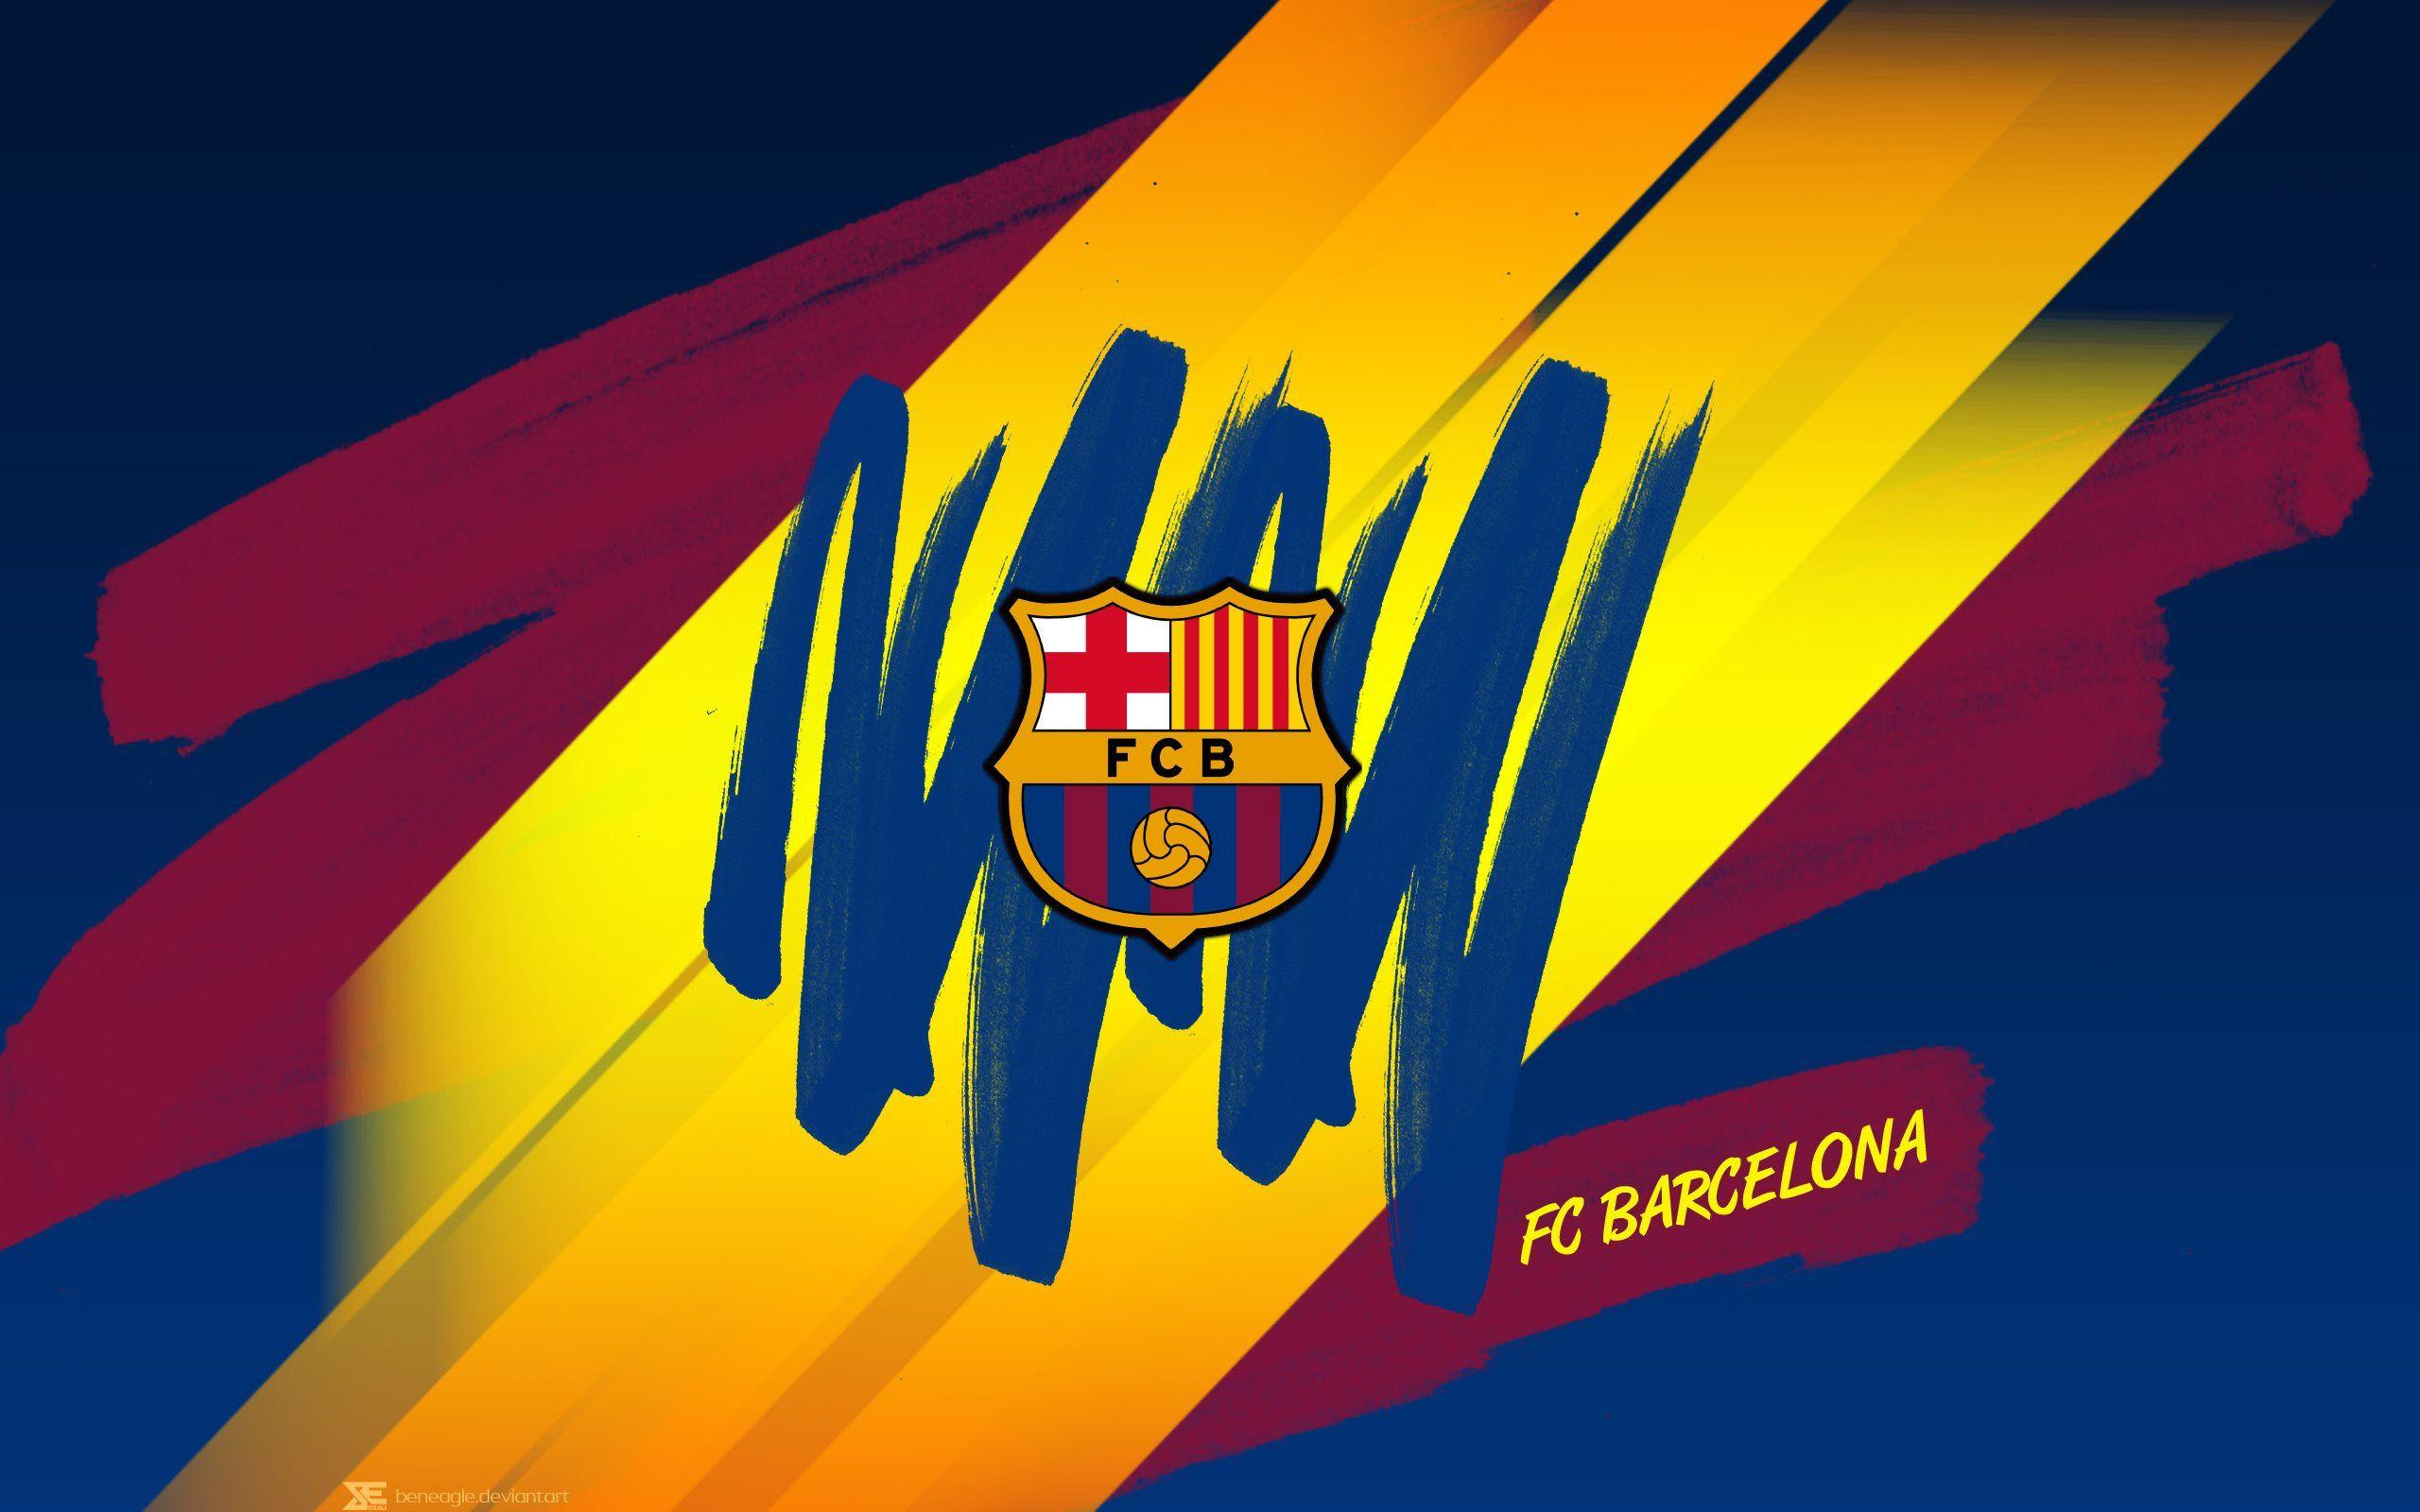 FC Barcelona Wallpapers 2016 - Wallpaper Cave